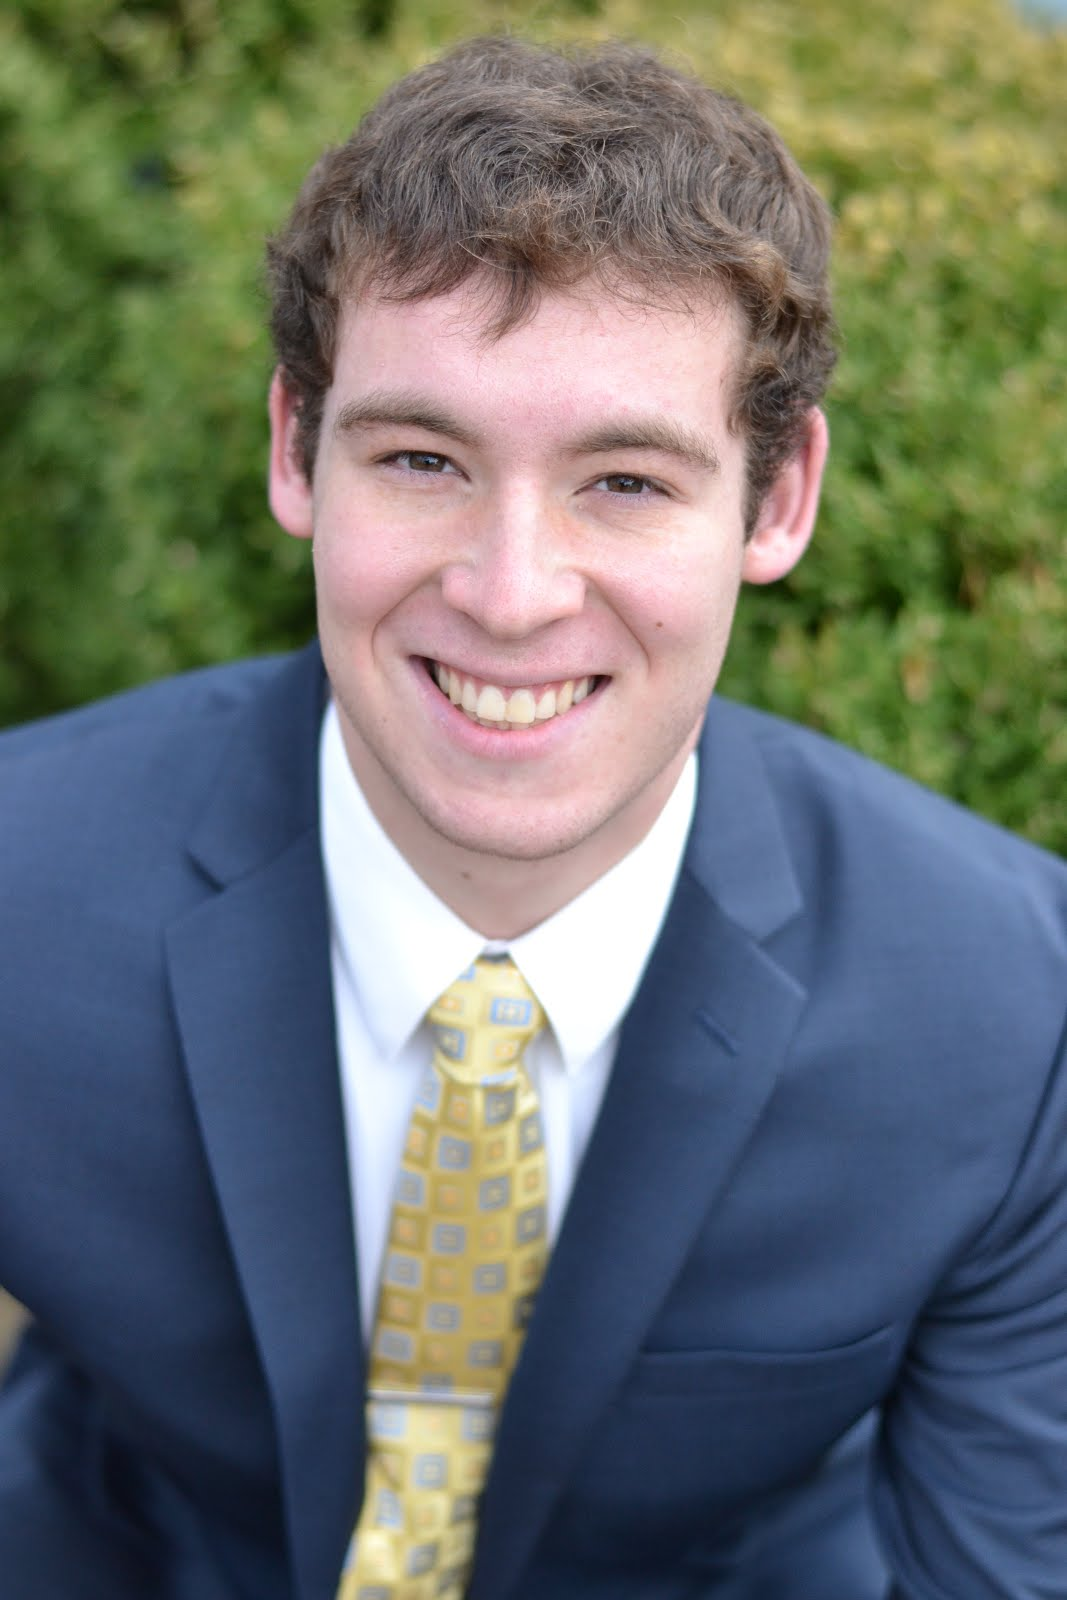 Elder Denver Toner